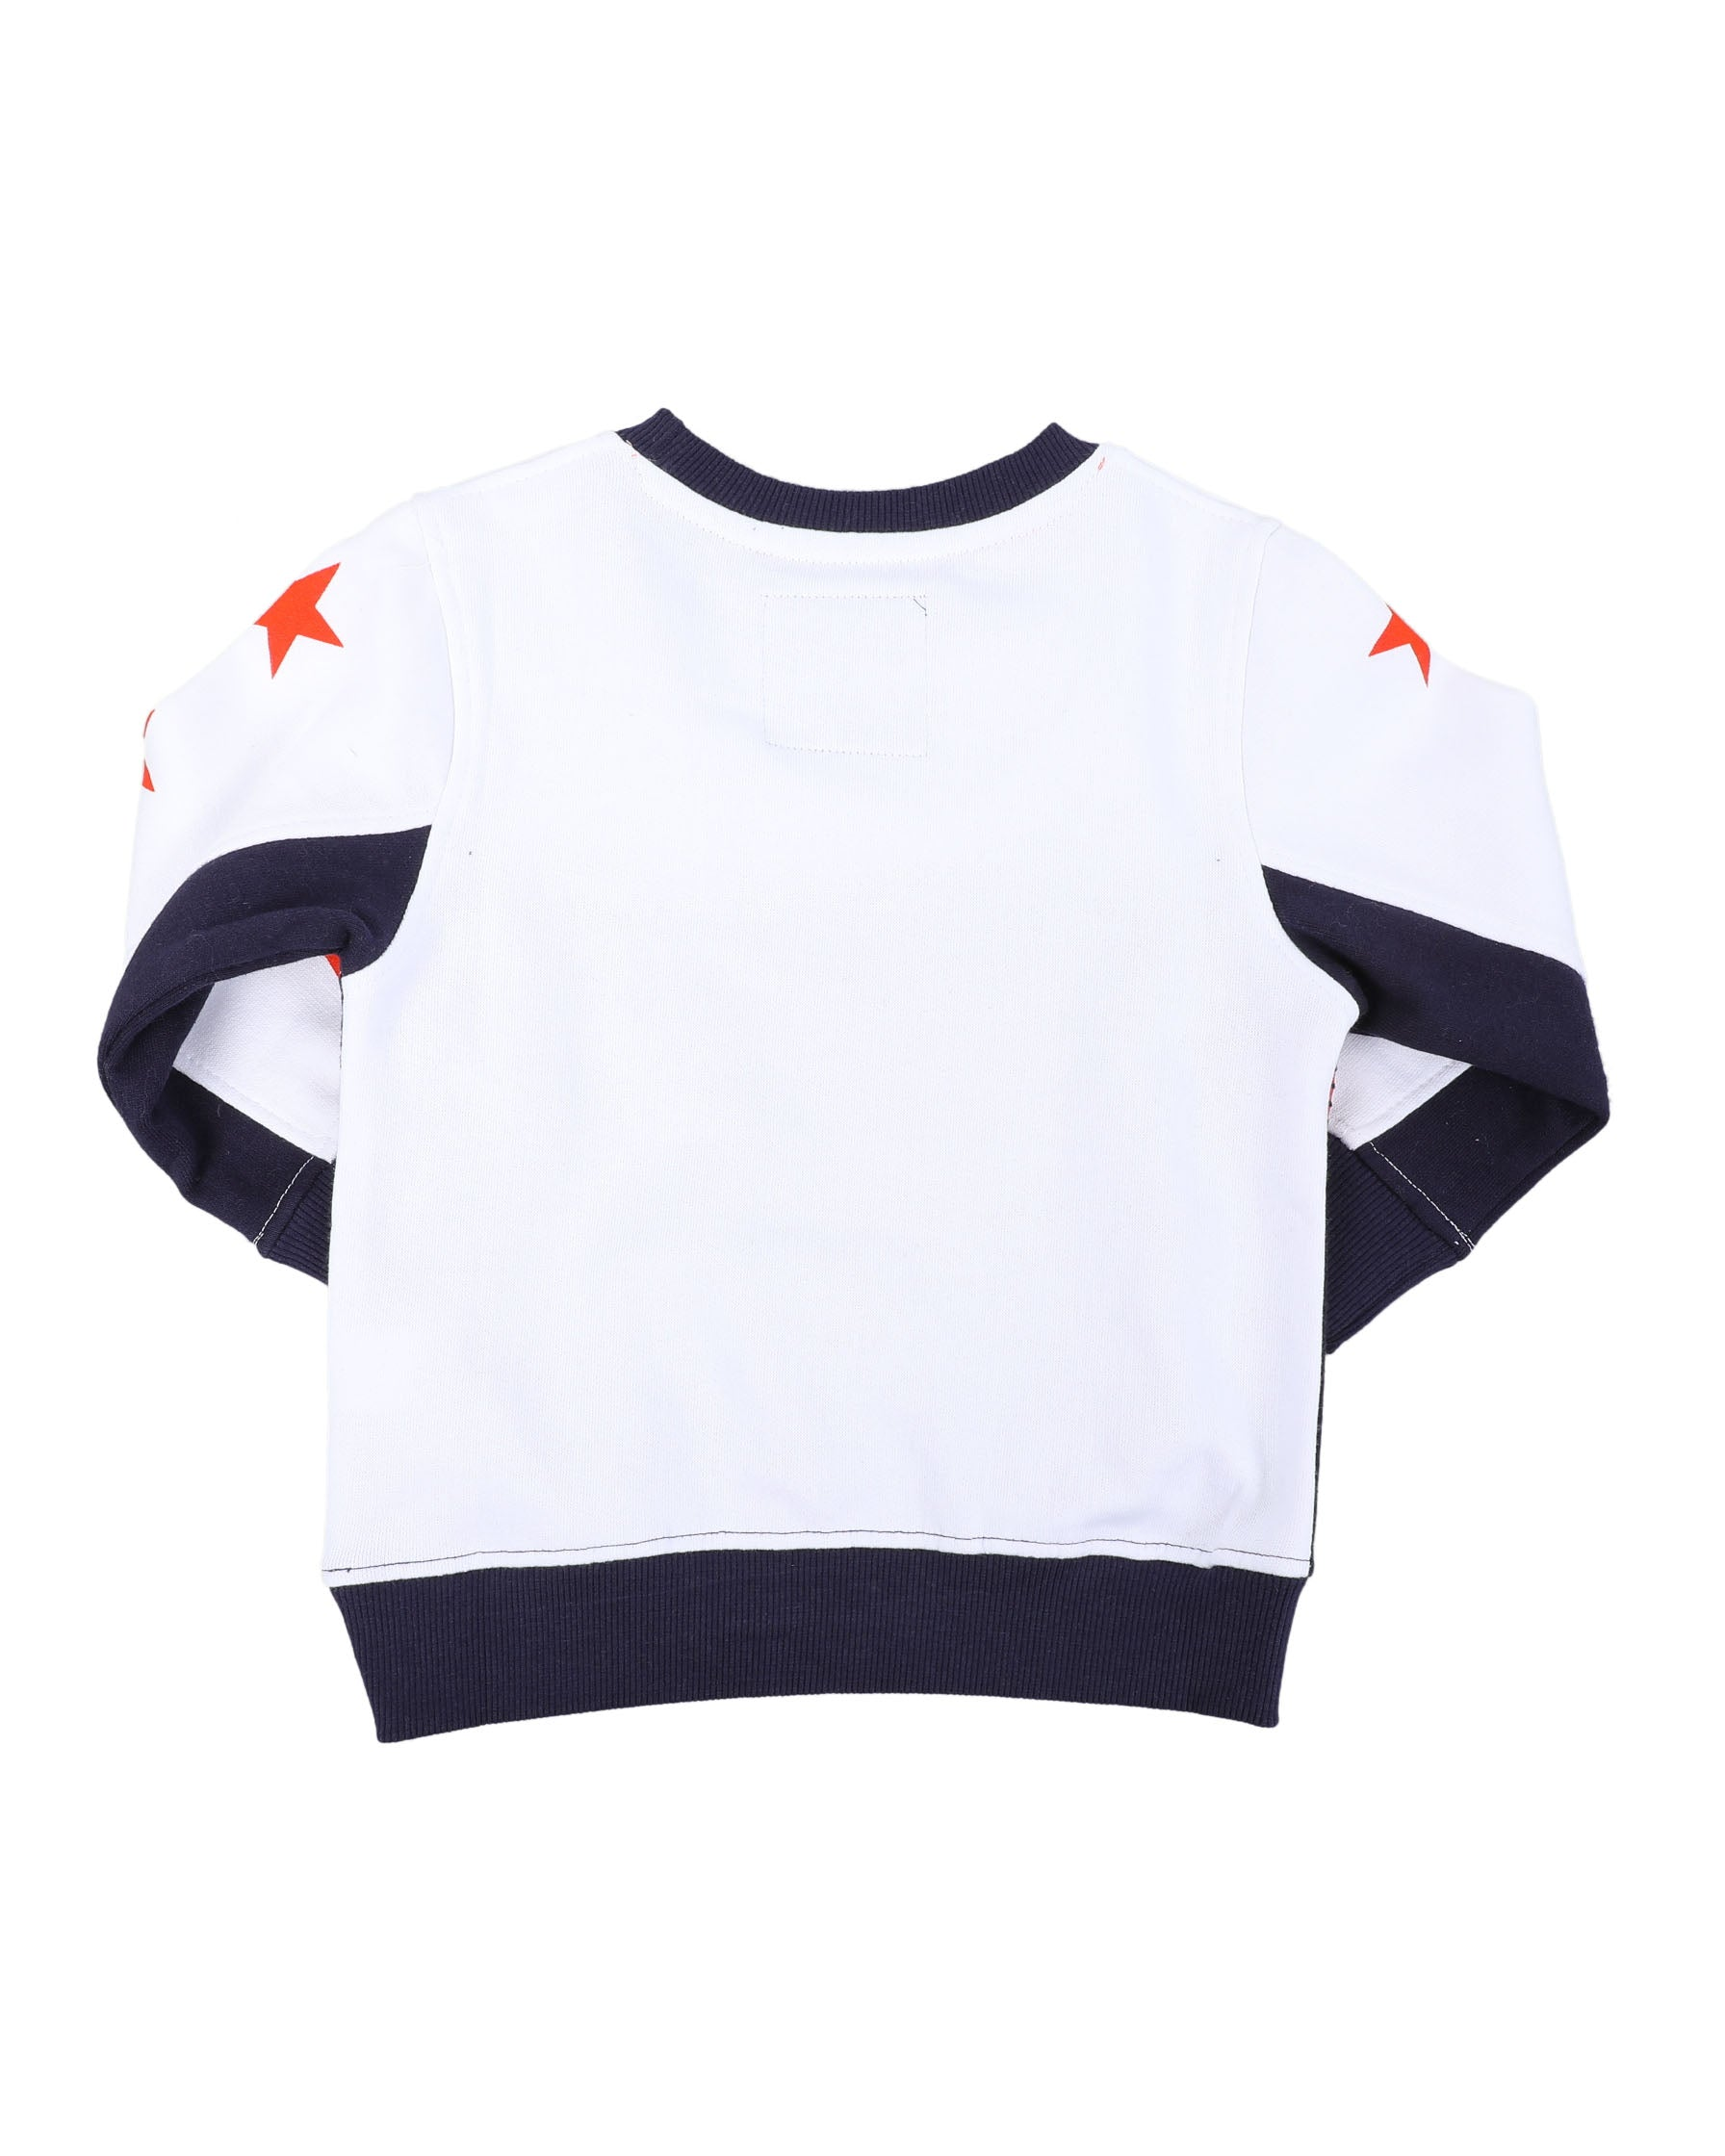 "Born Fly ""fly star"" Sweatshirt - FLY GUYZ"